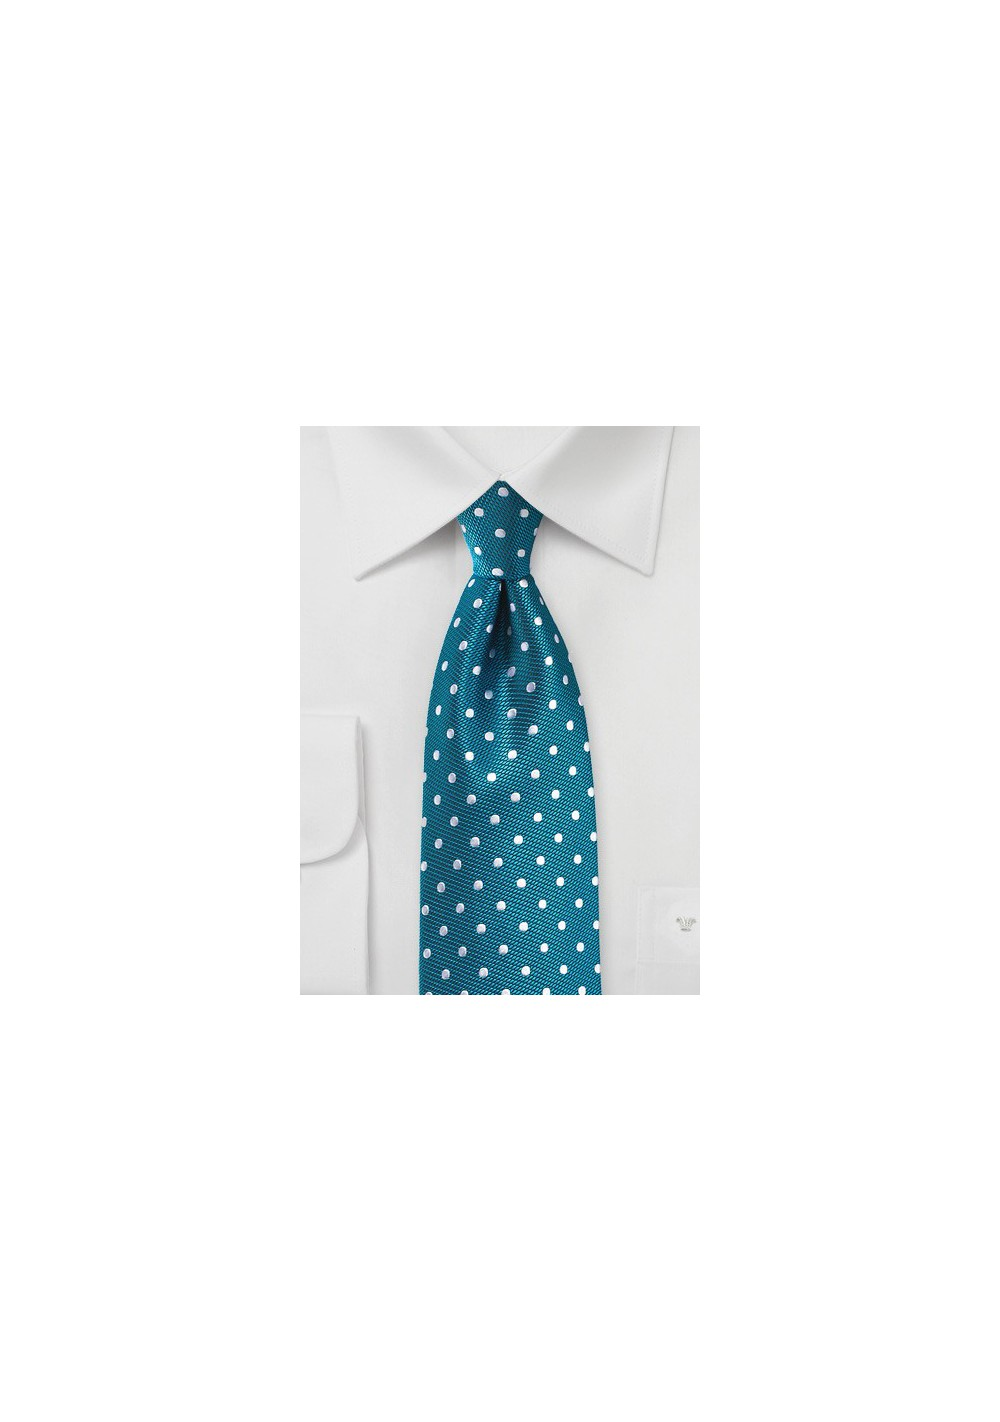 Bright Teal and Silver Polka Dot Tie